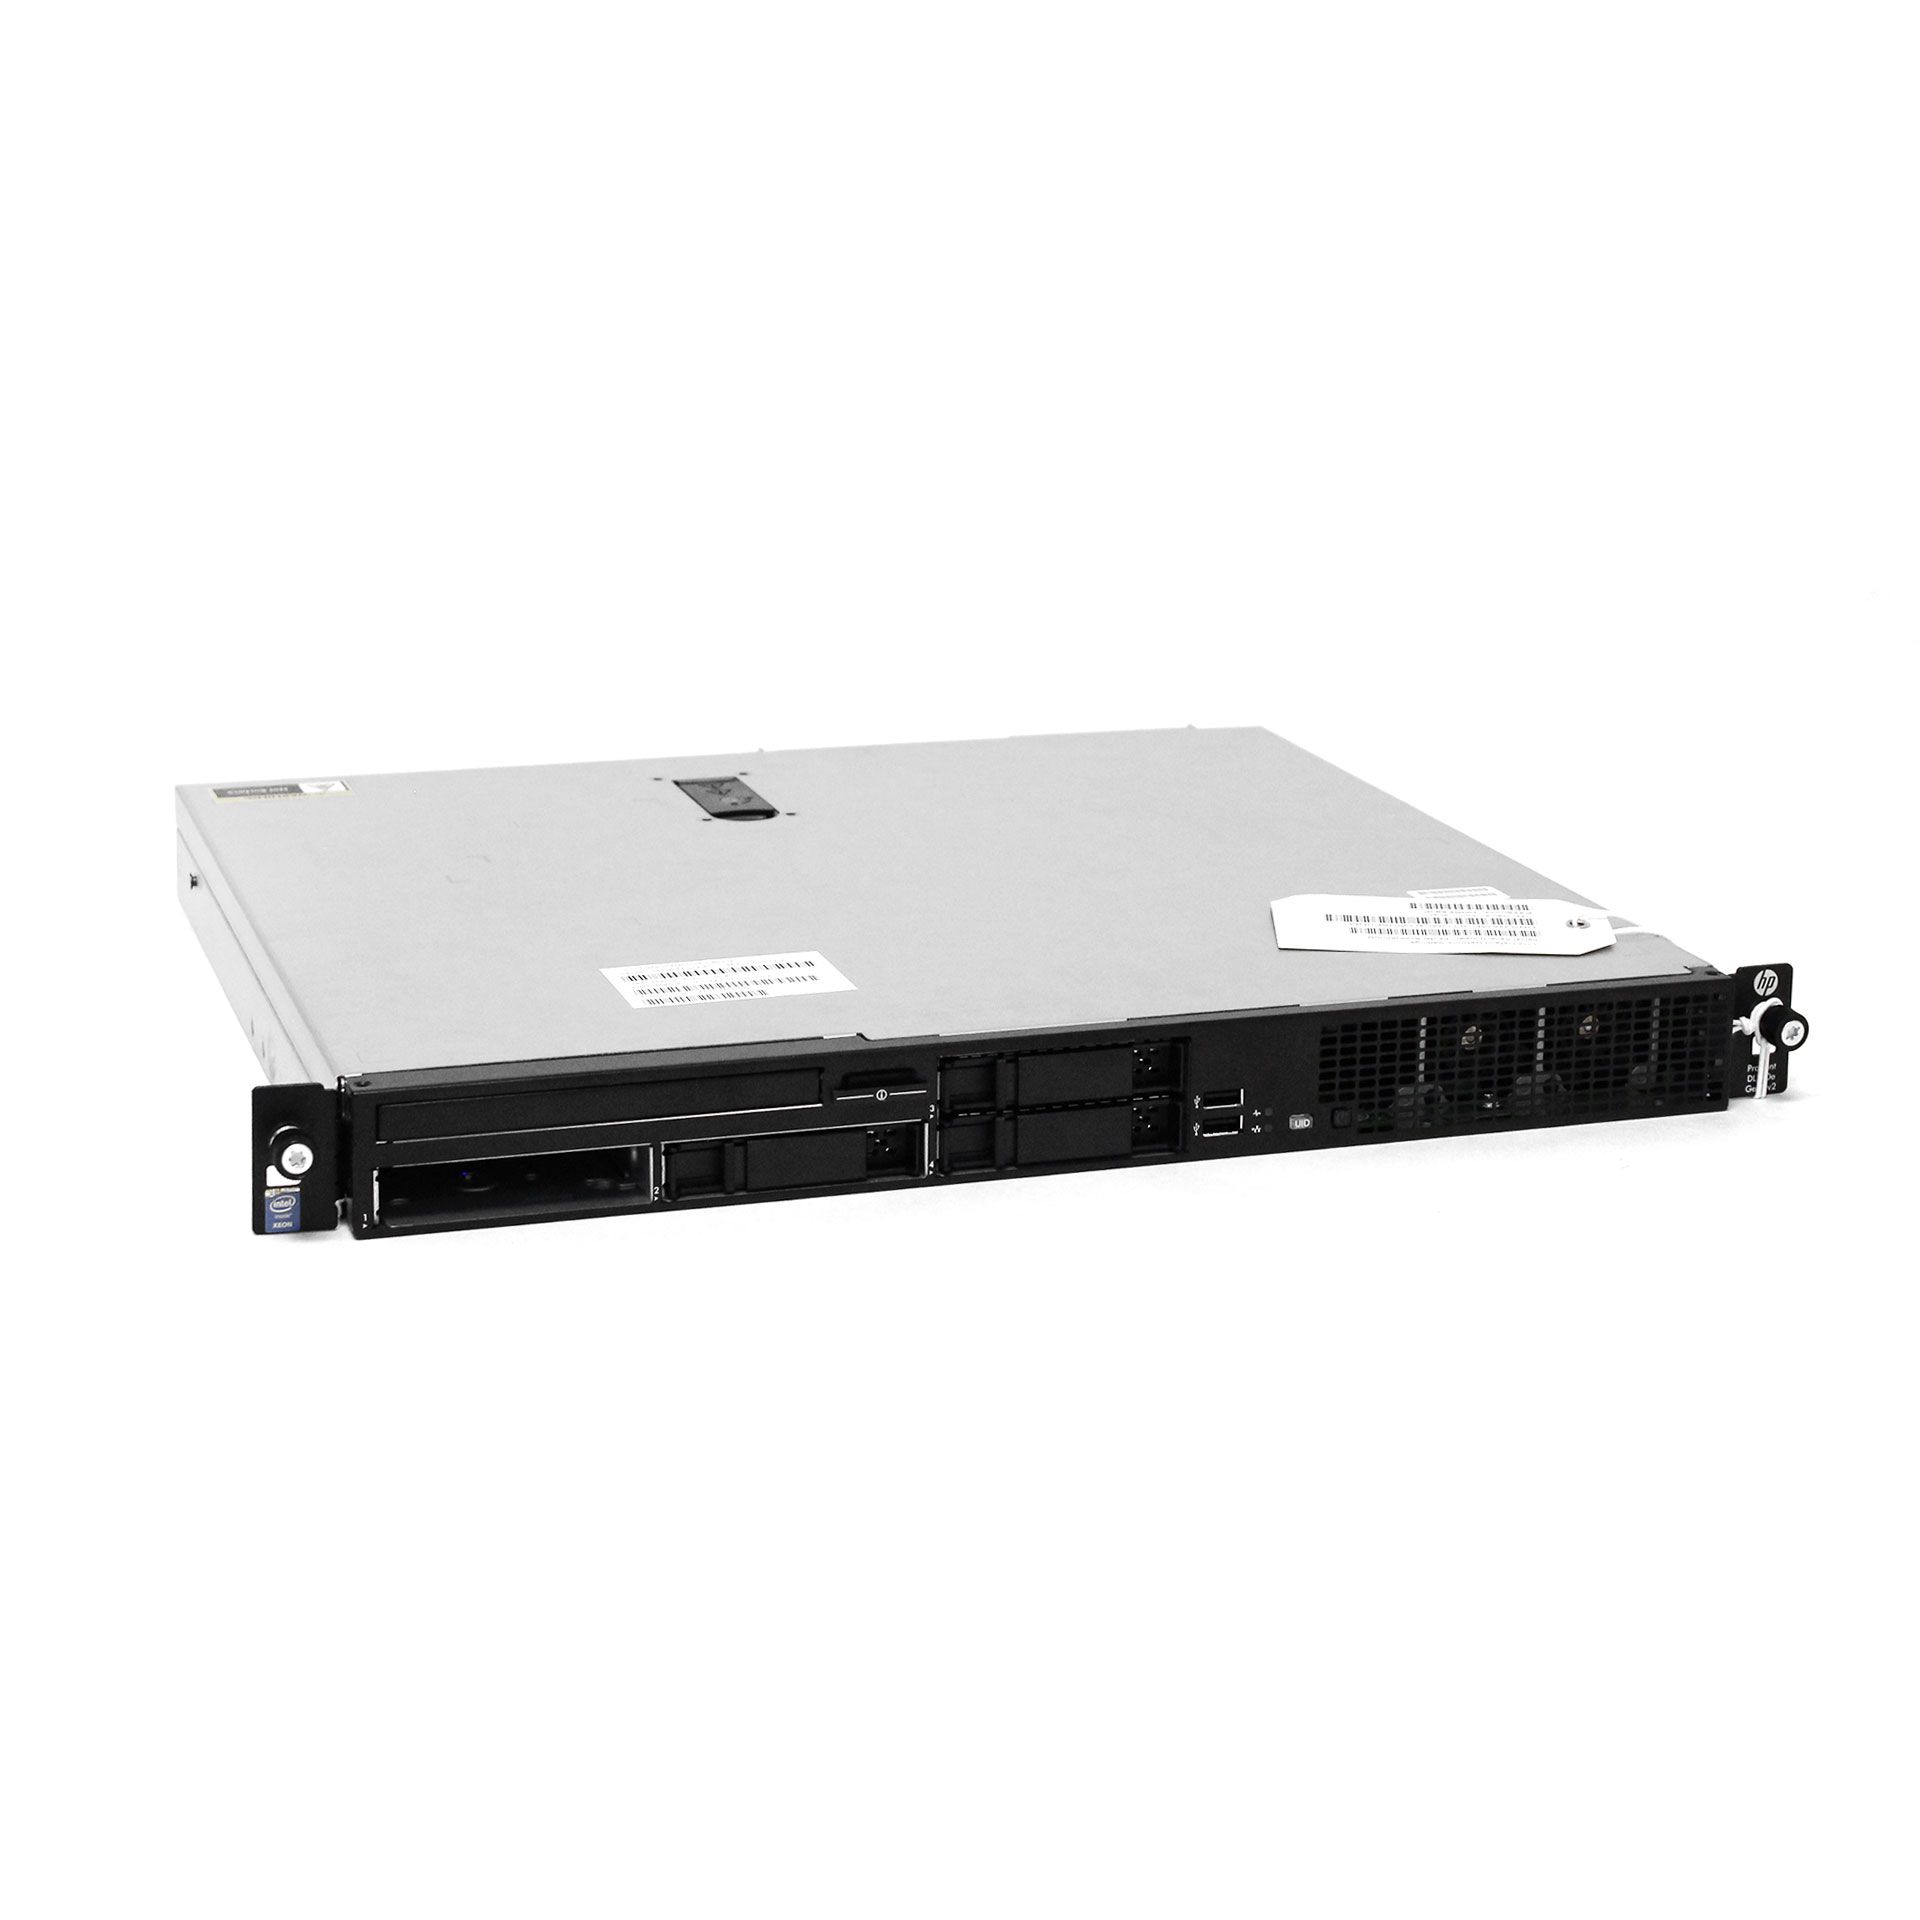 HP ProLiant DL320e Gen8 v2 Xeon E3-1241V3 3.5GHz 768645-001